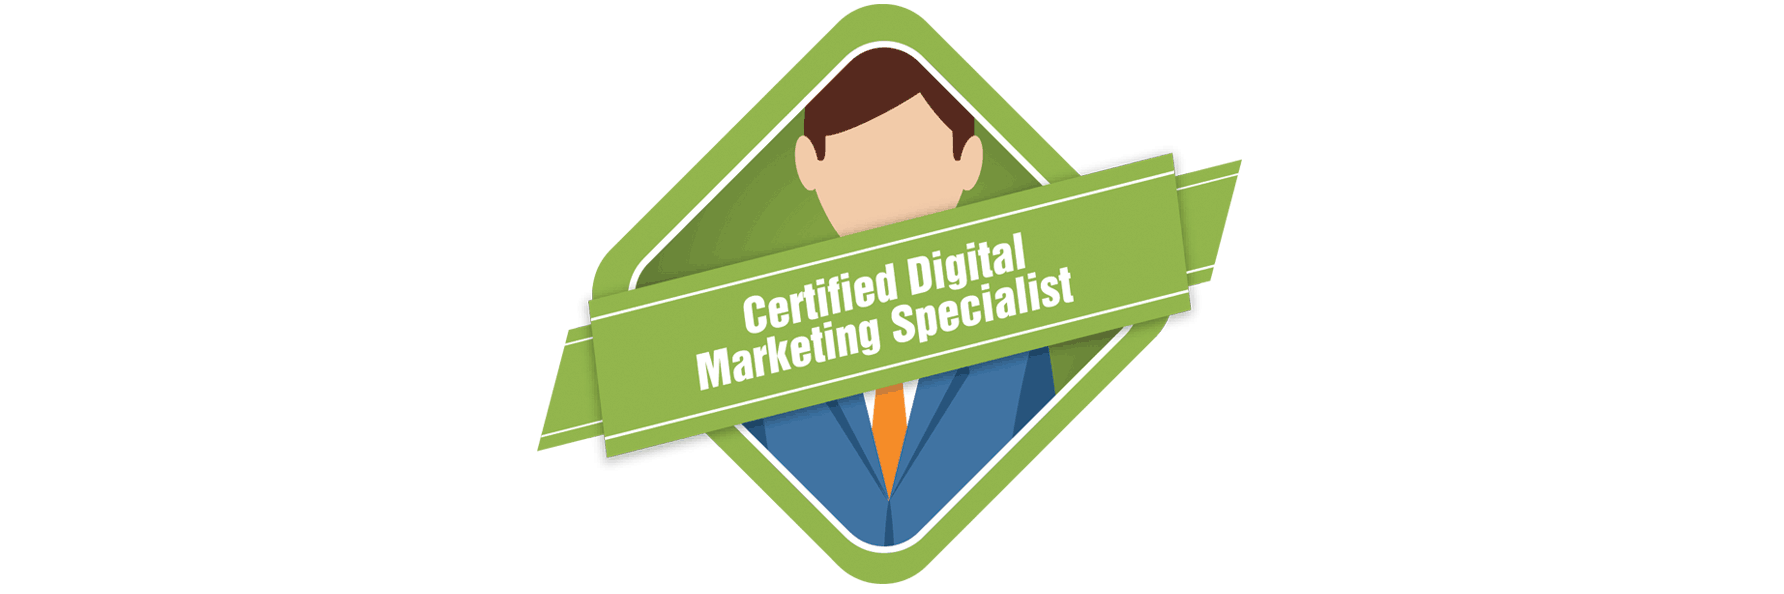 Certified Digital Marketing Specialist Program by Janette Toral